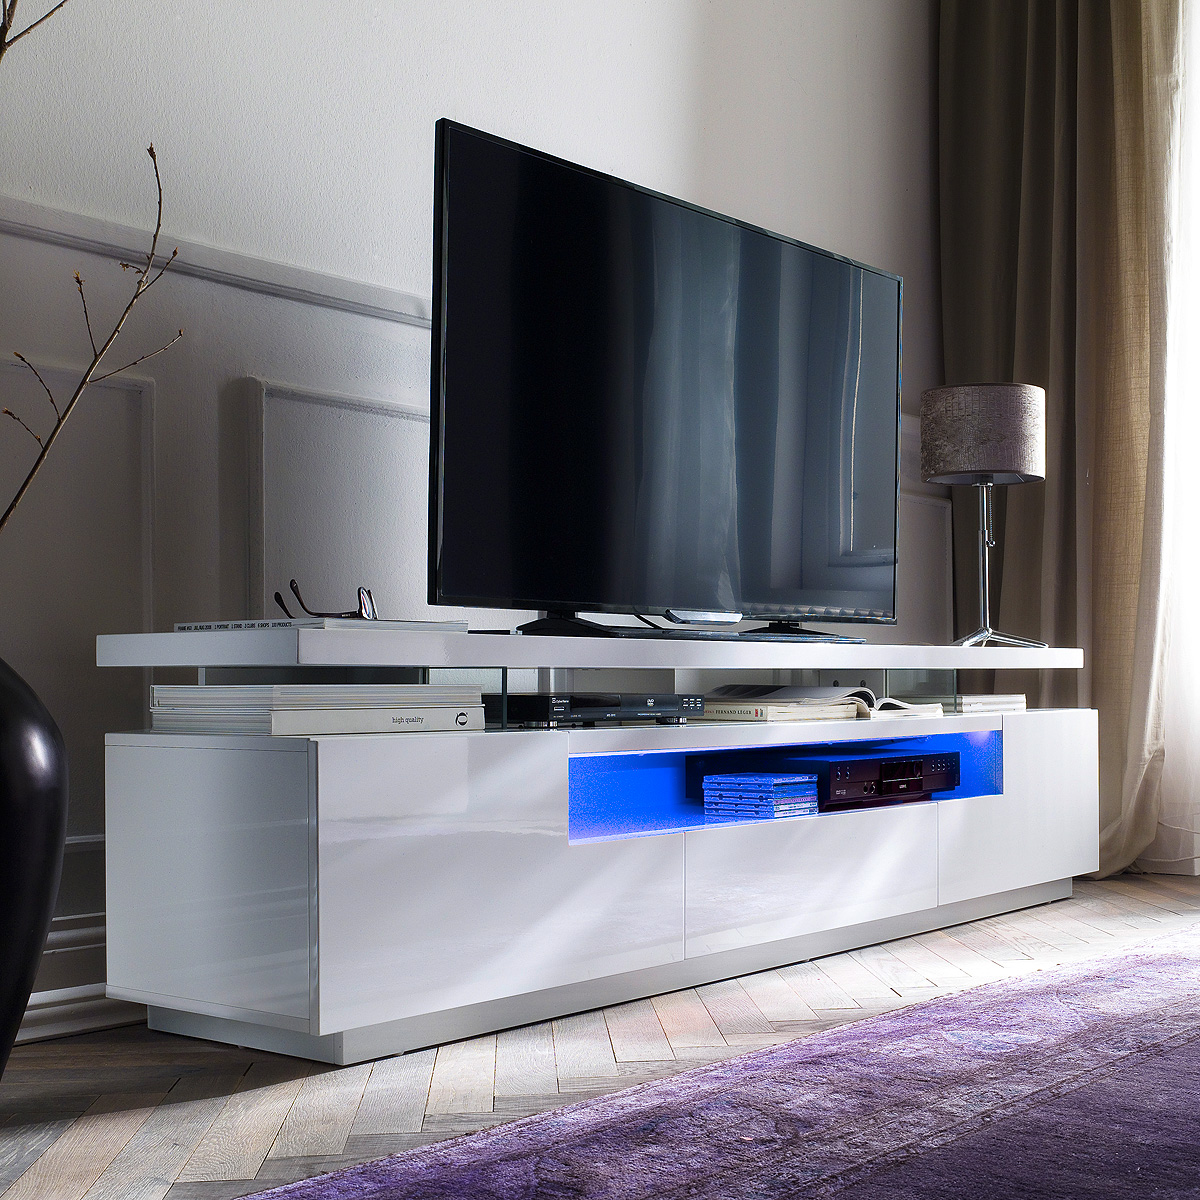 tv hifi schrank hochglanz die neuesten innenarchitekturideen. Black Bedroom Furniture Sets. Home Design Ideas